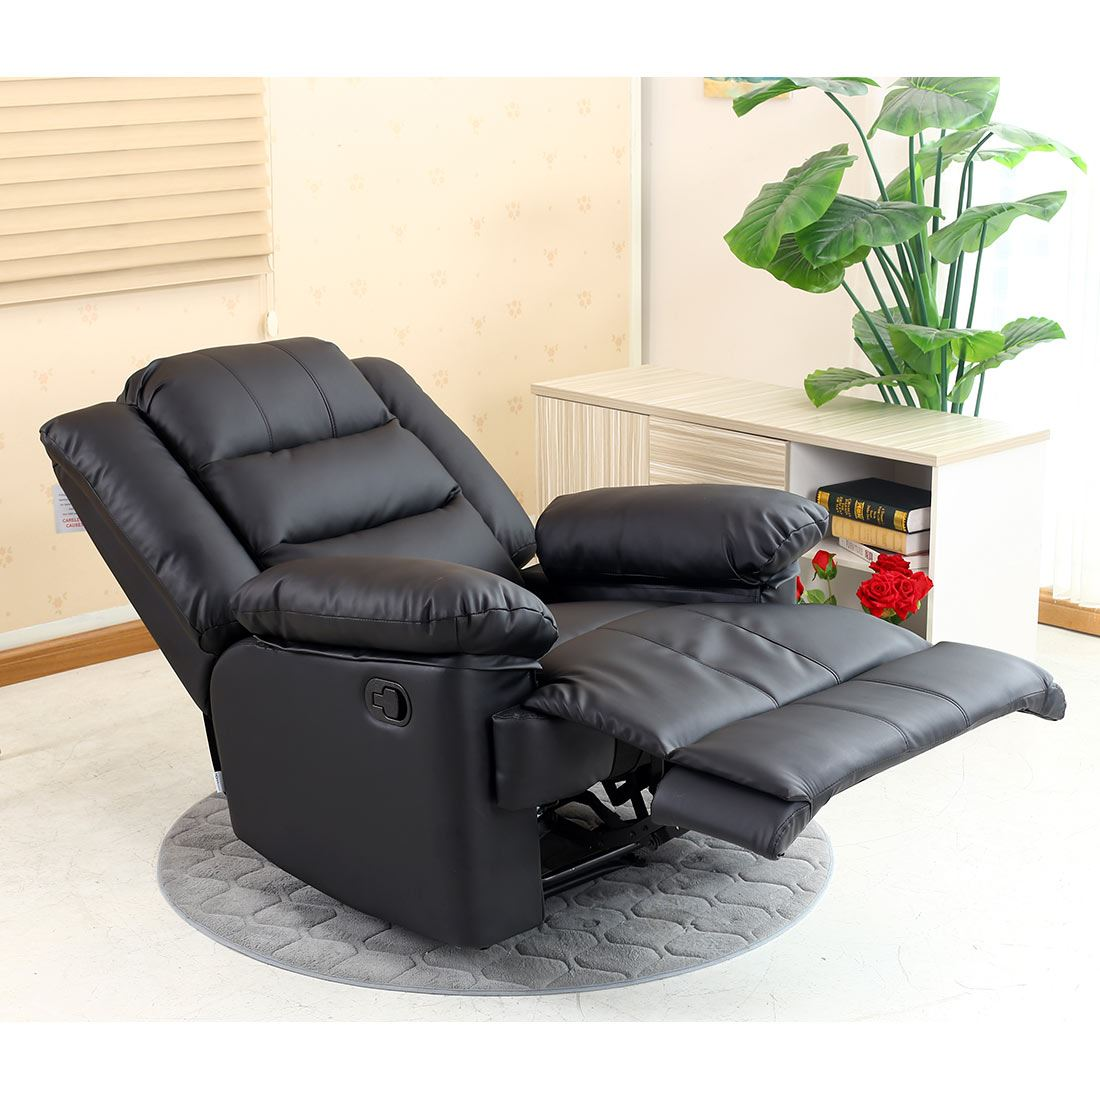 reclining gaming chair child size couch and loxley leather recliner armchair sofa home lounge